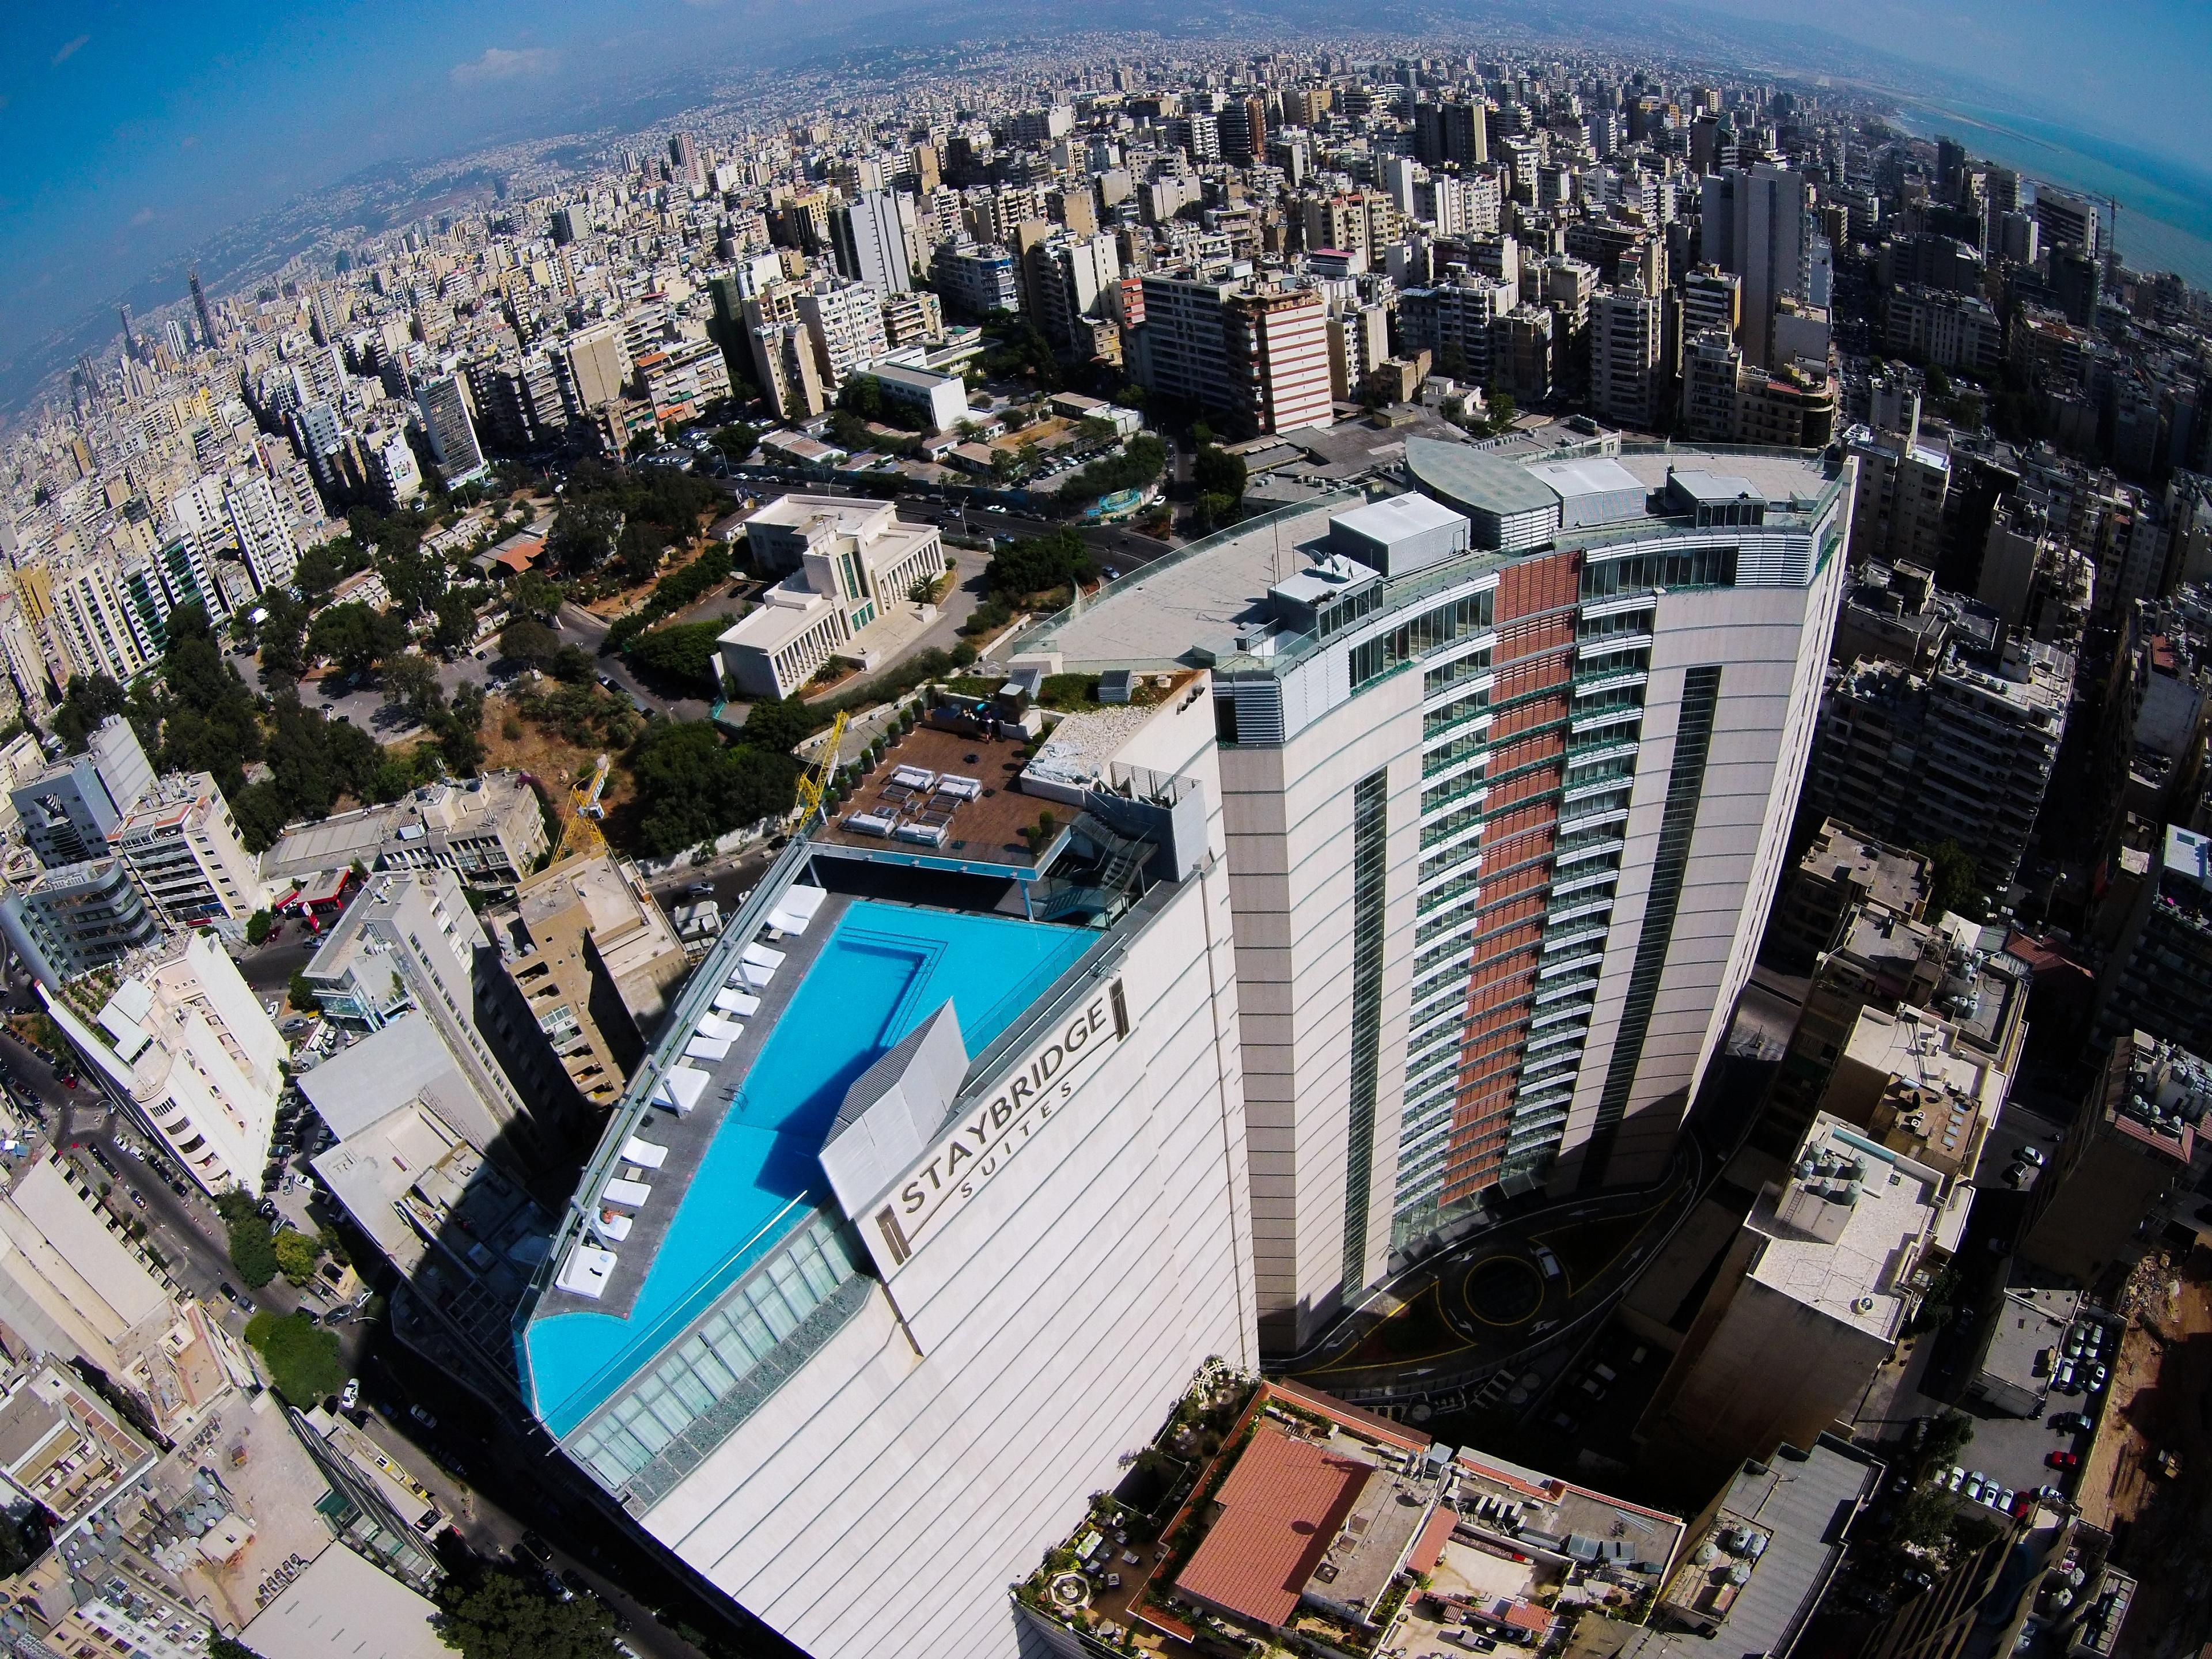 Beirut Hotels Staybridge Suites Extended Stay Hotel In Lebanon